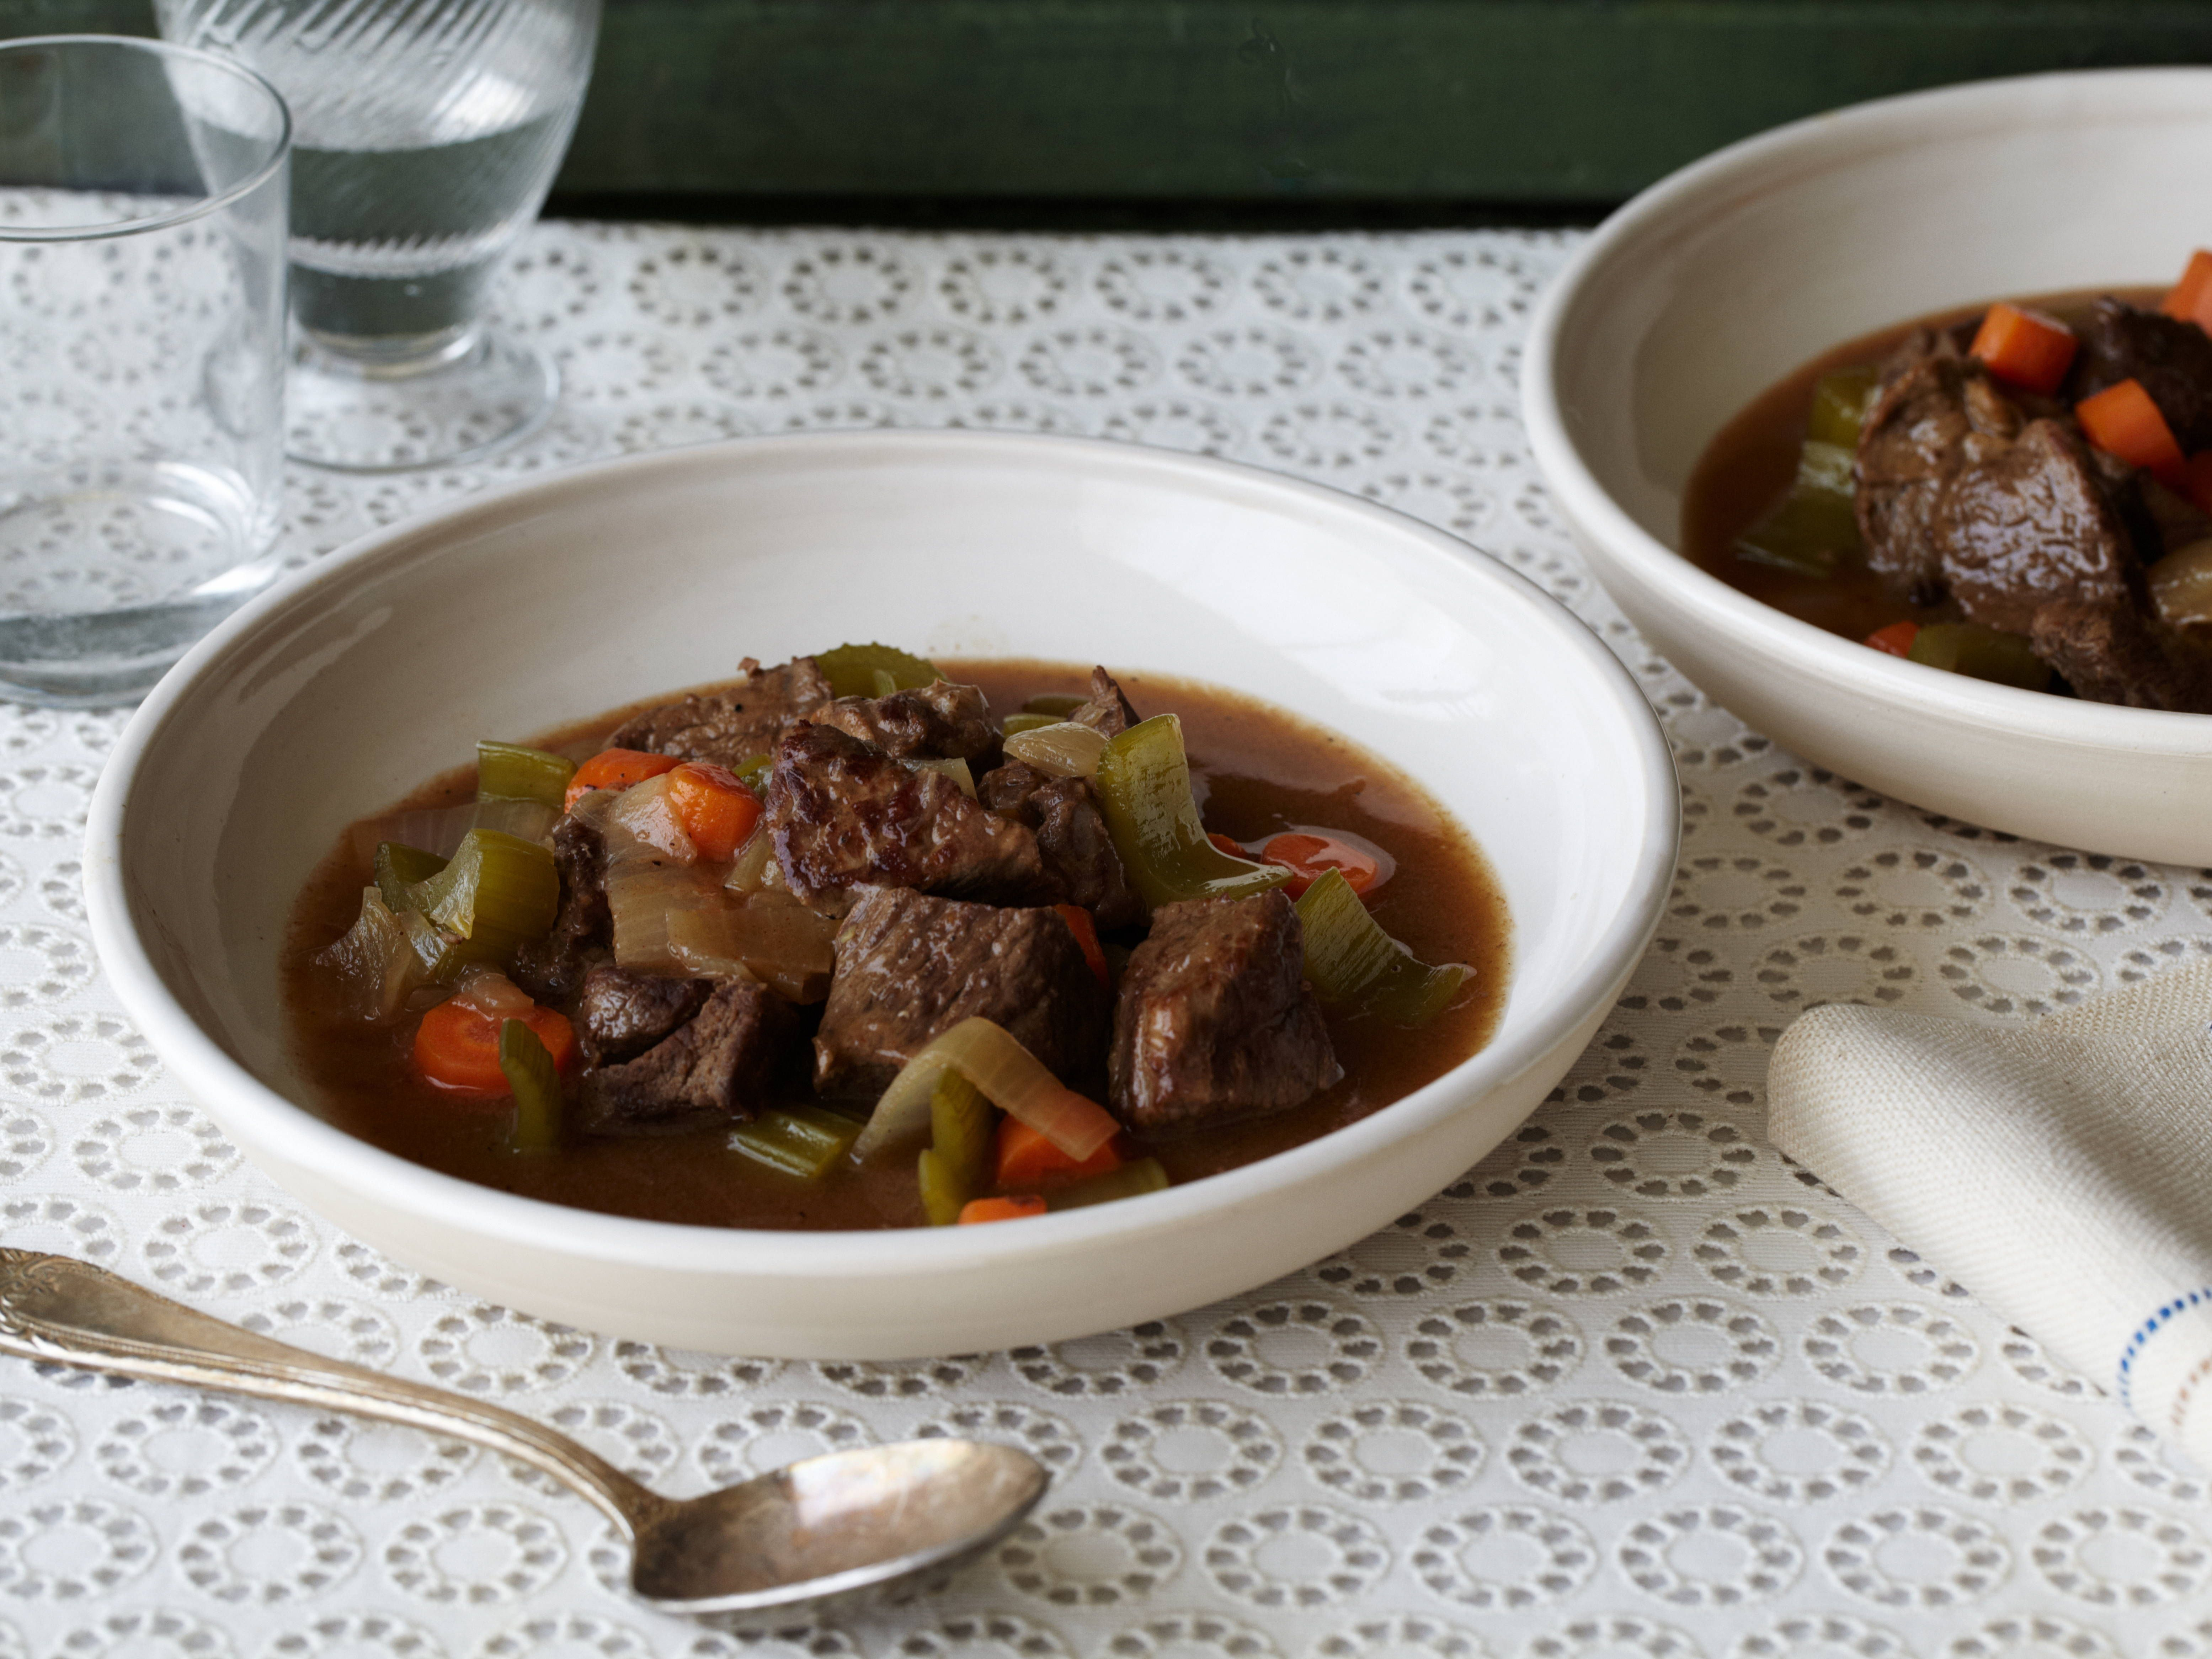 This Really Is A Delicious Stew Recipe I Made And Recommend The Following Adjustments 1 Use Homemade B Beef Stew Recipe Stew Recipes Food Network Recipes